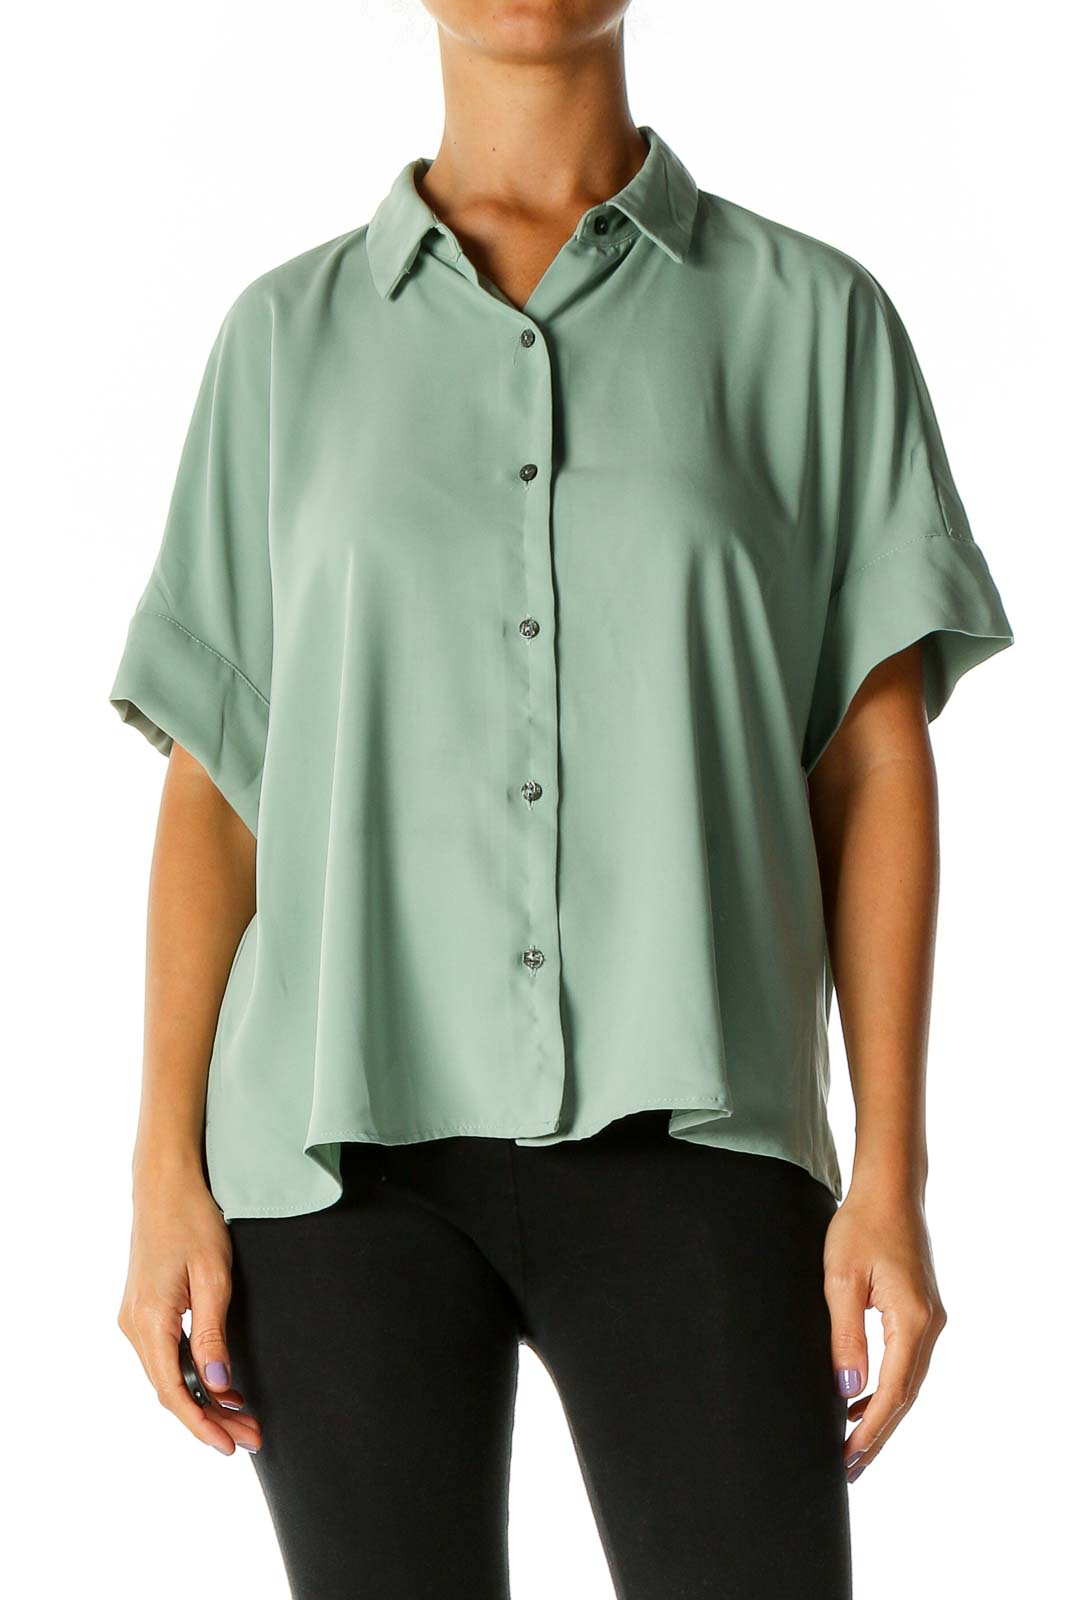 Green Solid Work Shirt Front